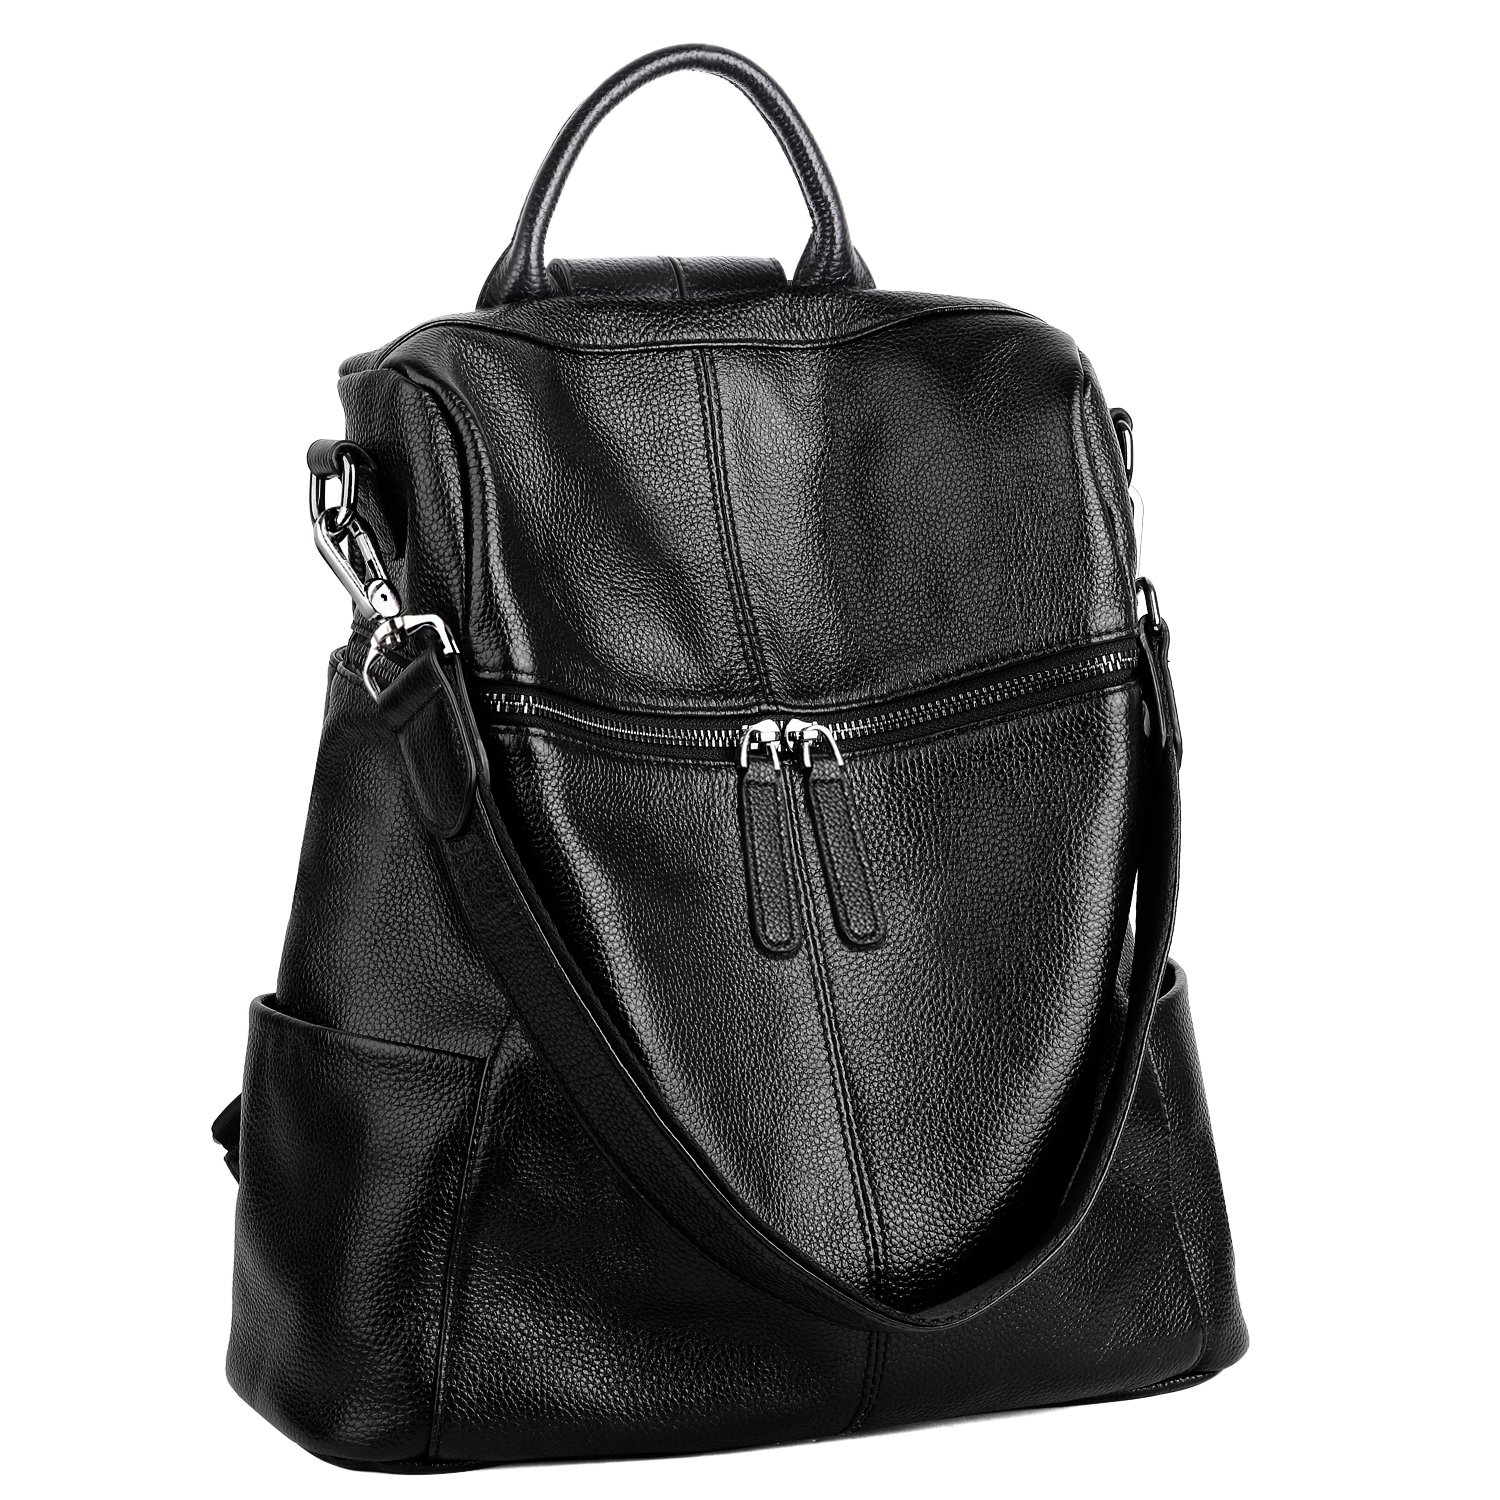 YALUXE Womens Real Leather Fashion Daypack Ladies Casual Backpack 11002191-1